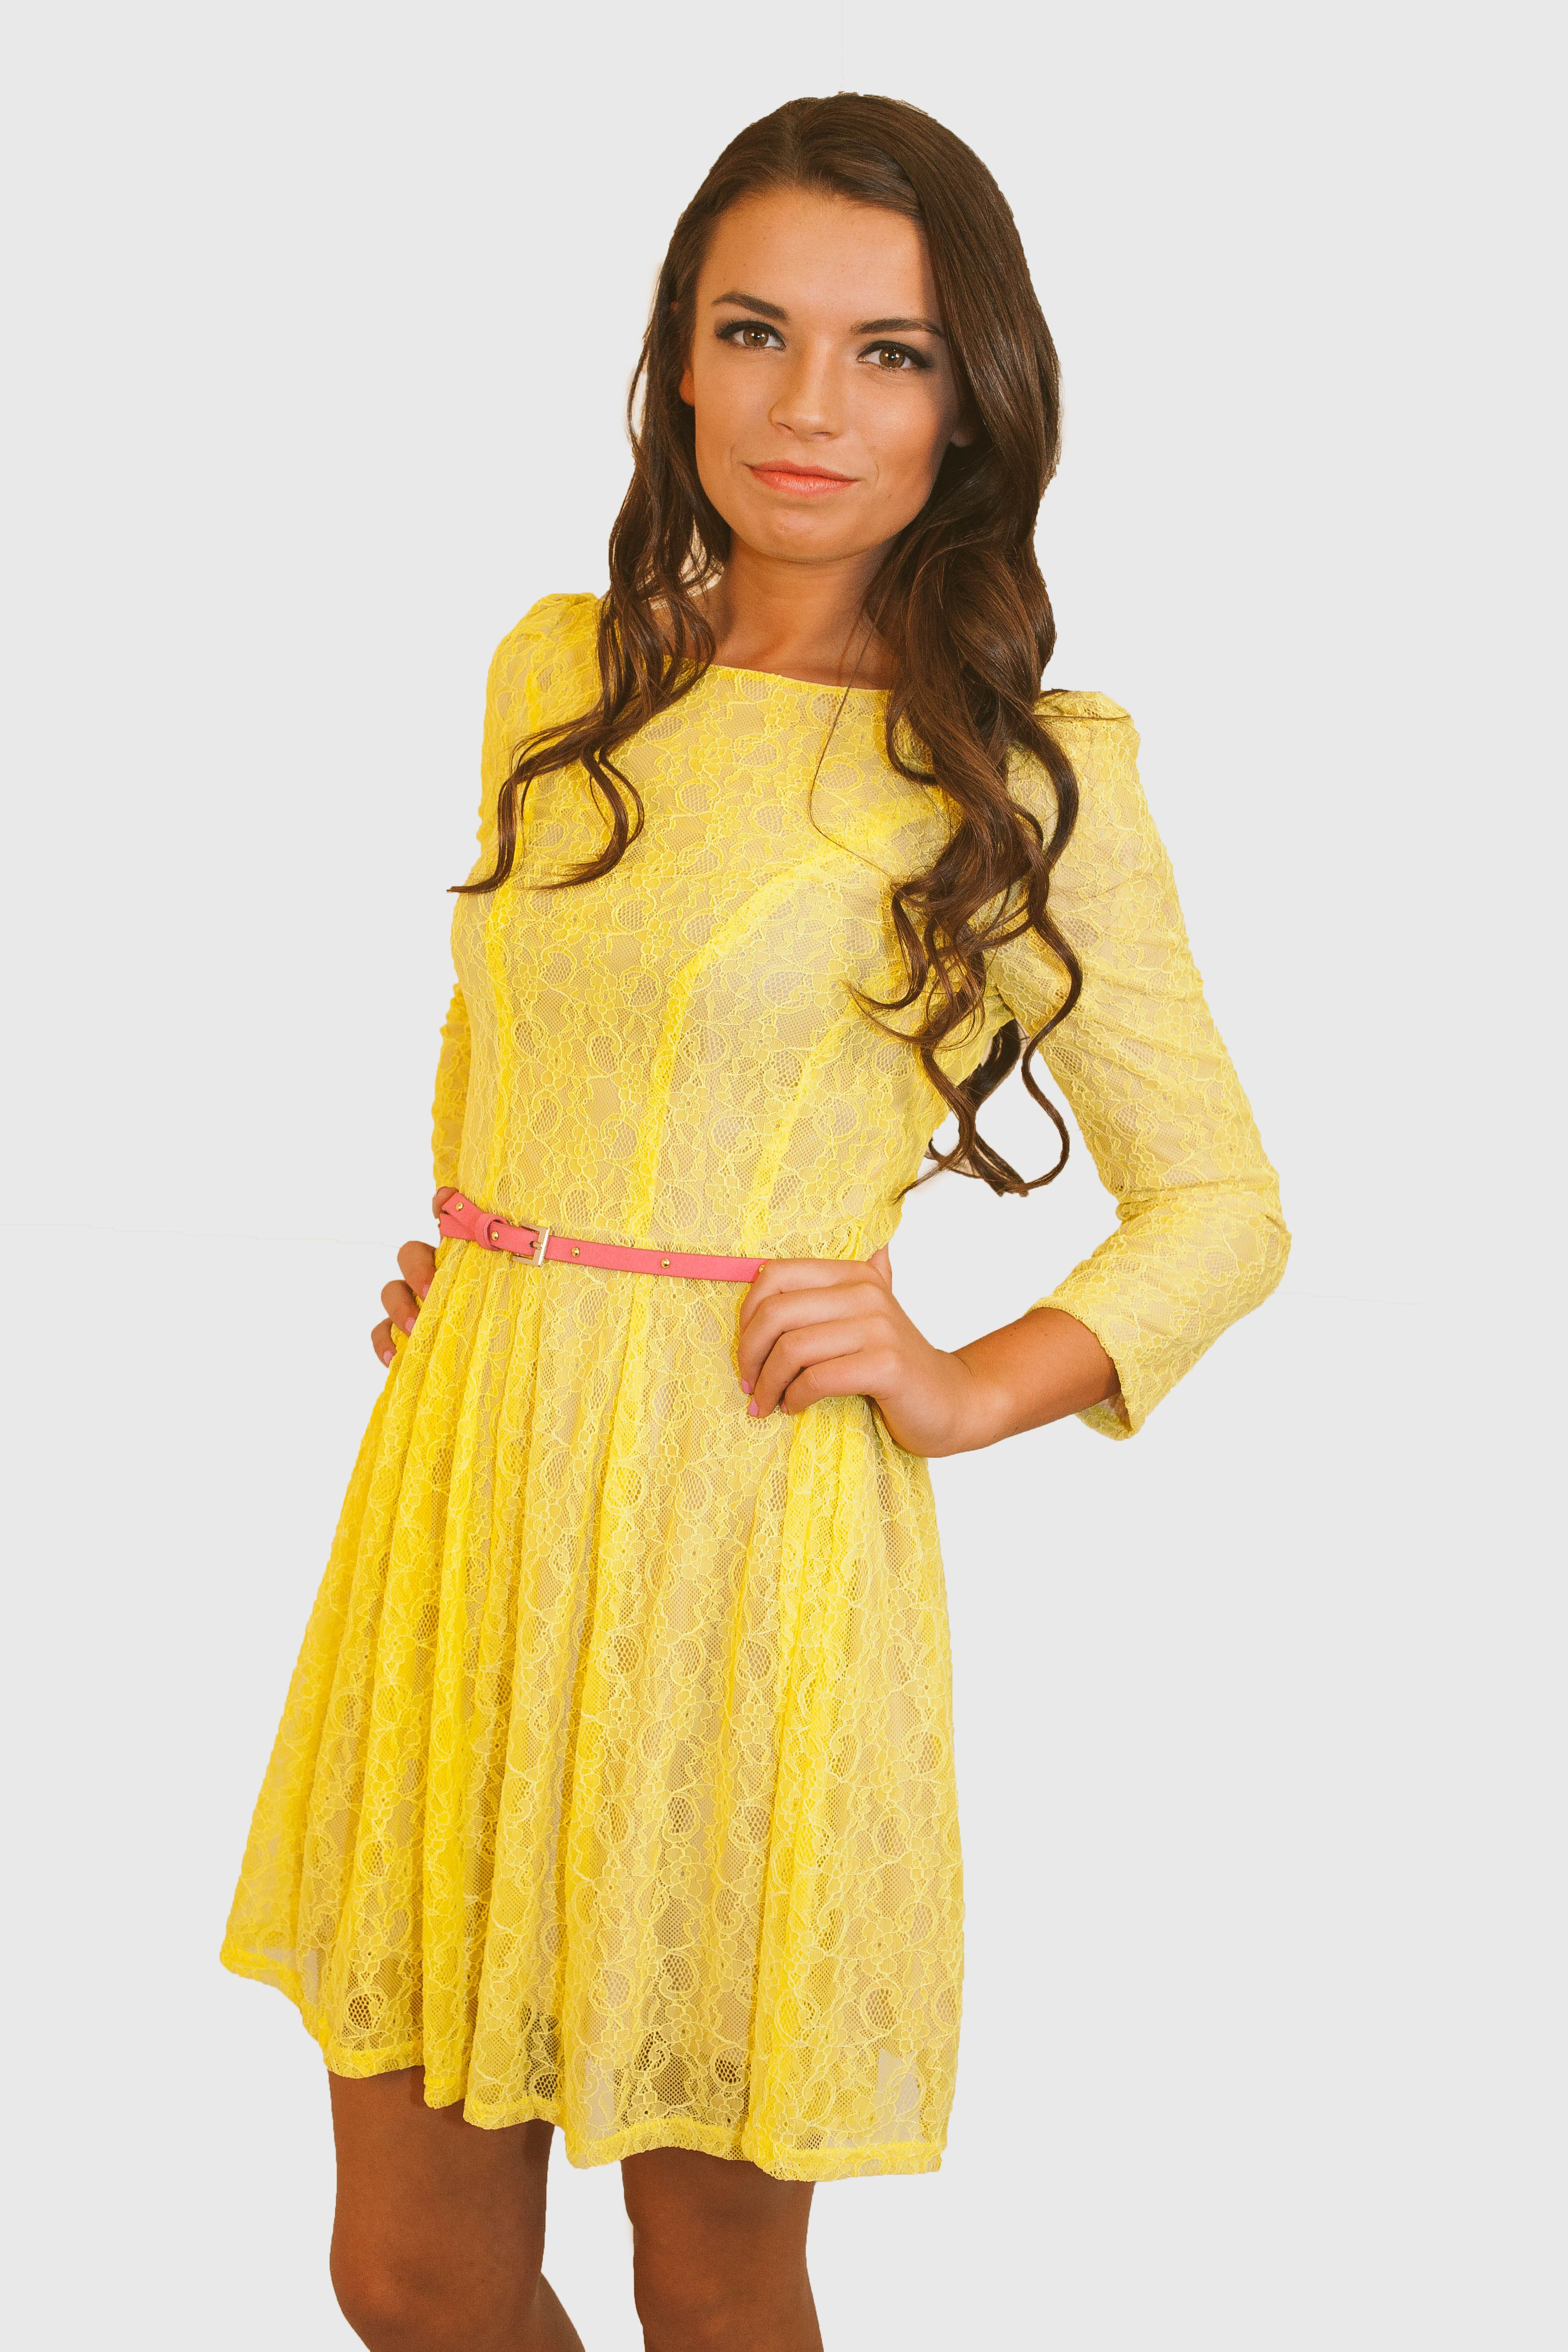 Cheery yellow lace dress now on sale hardtboutique